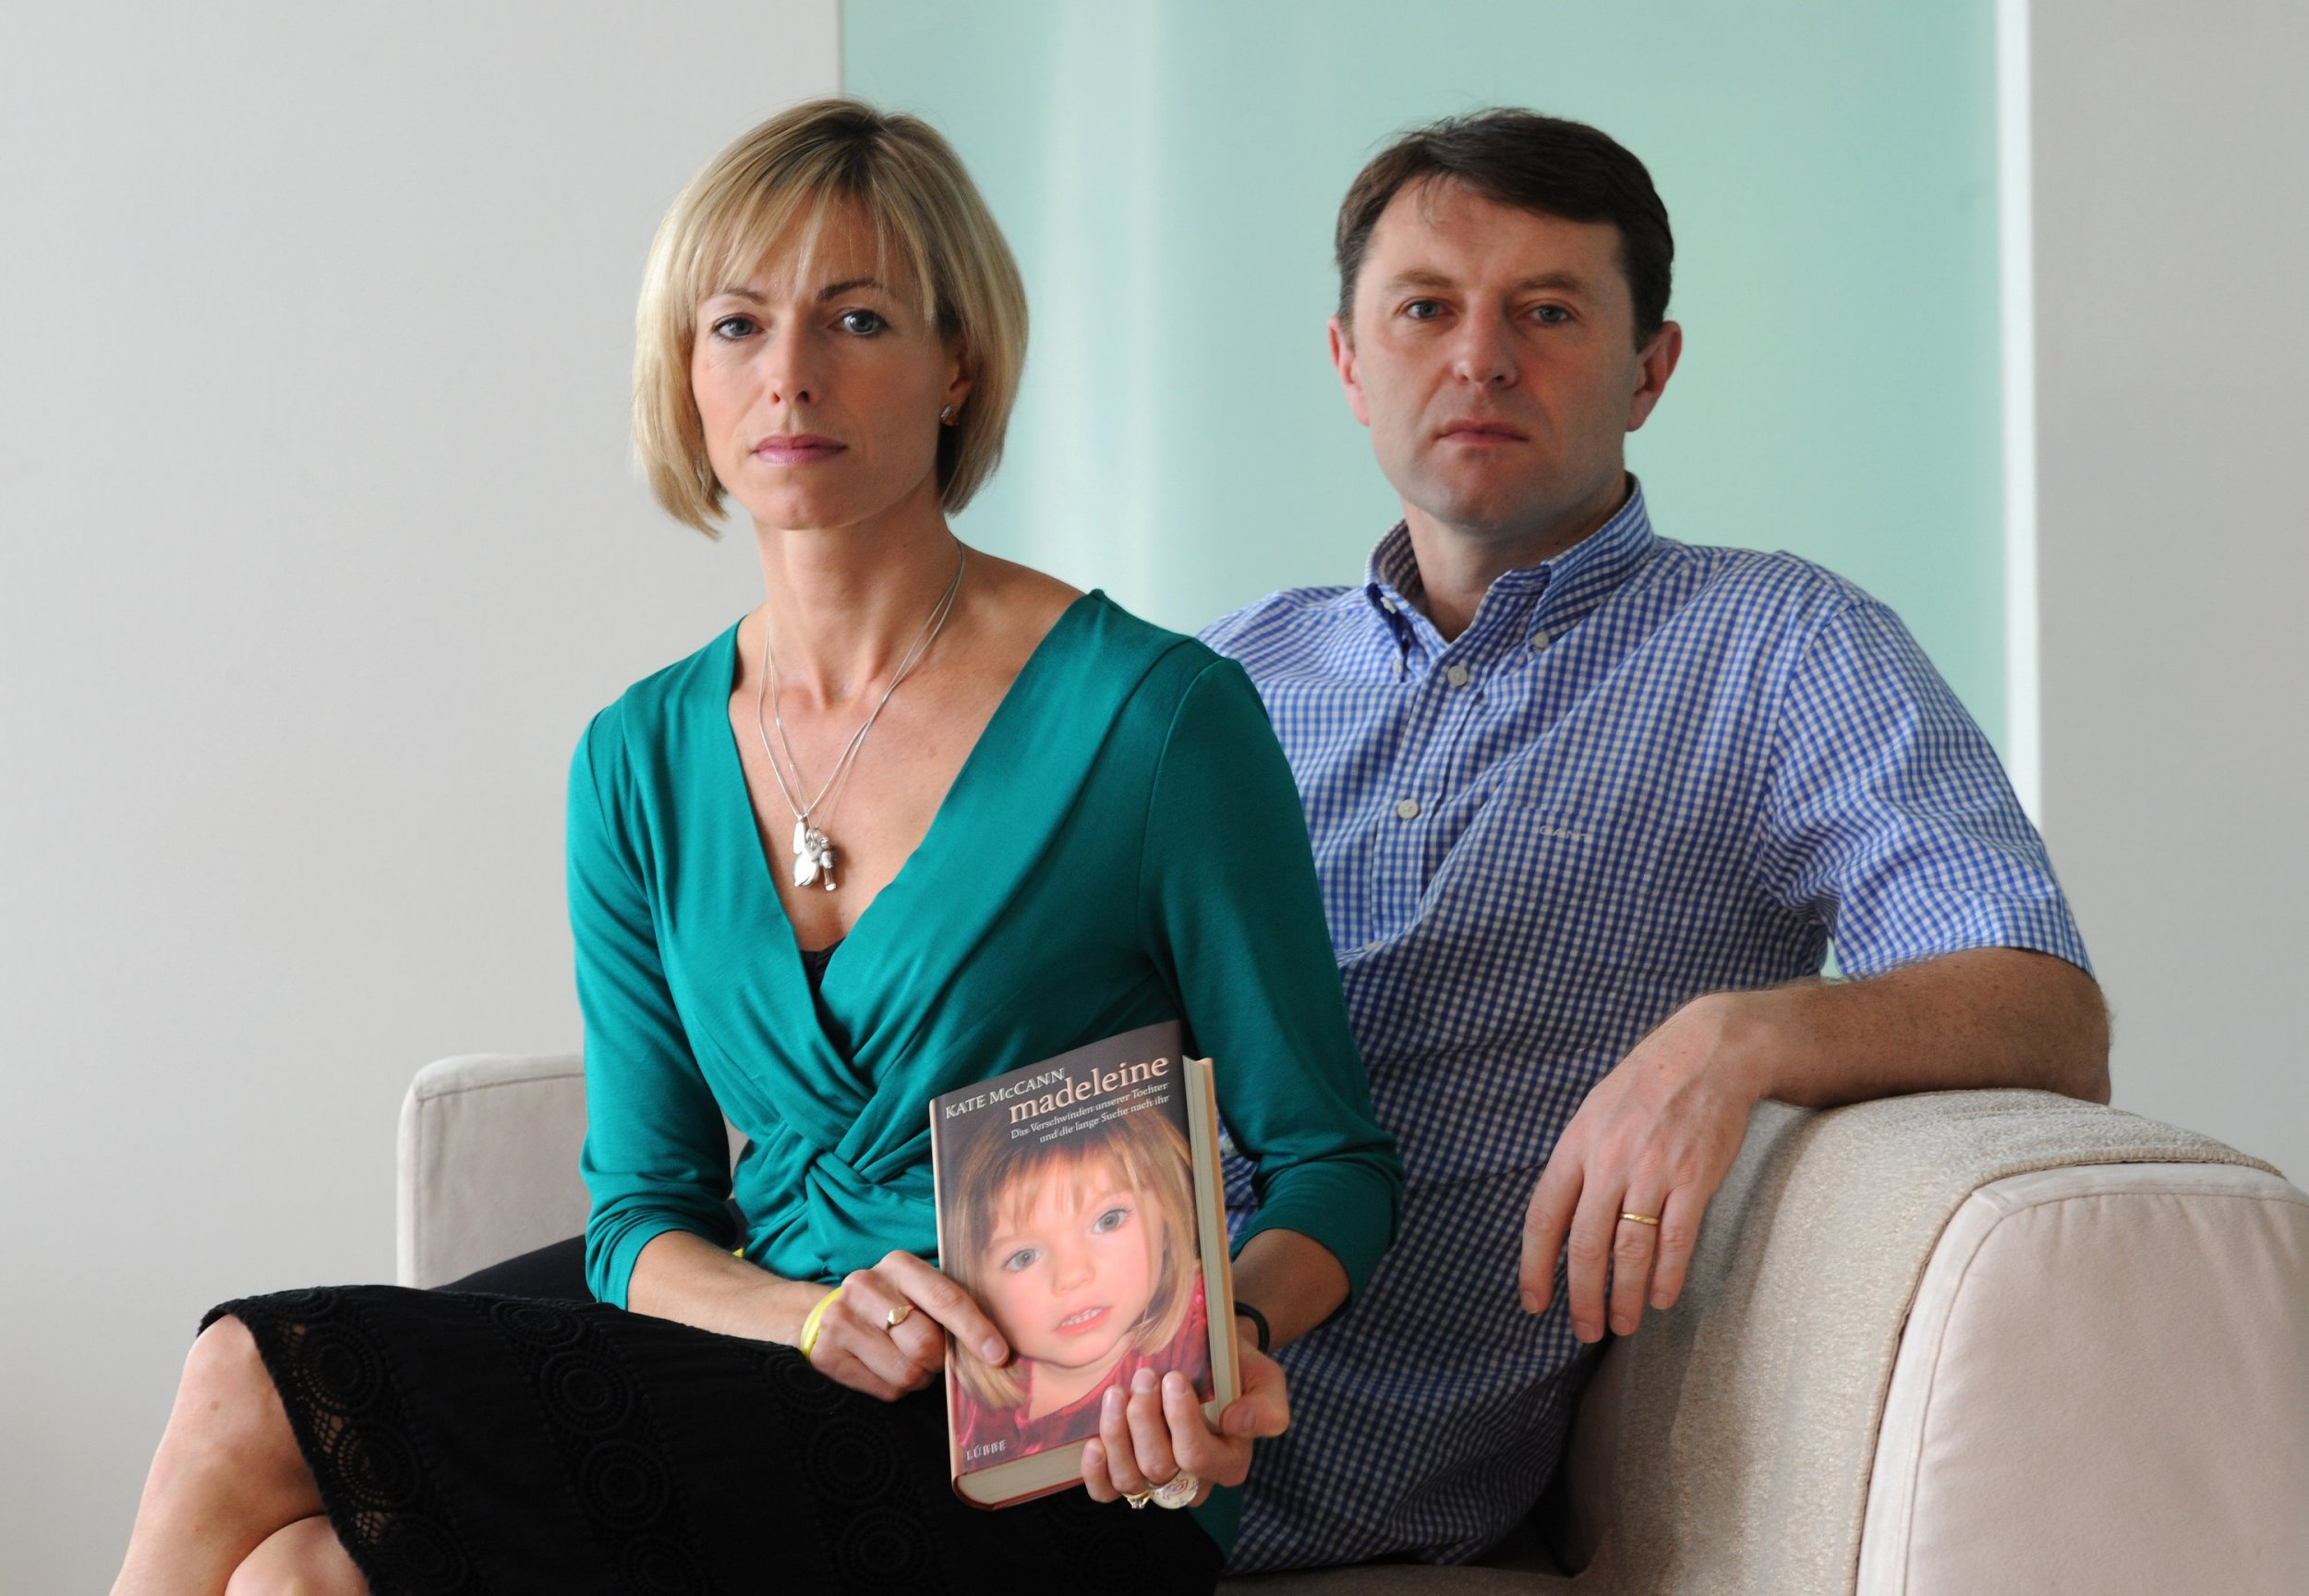 The parents of Madeleine McCann, Kate and Gerry McCann